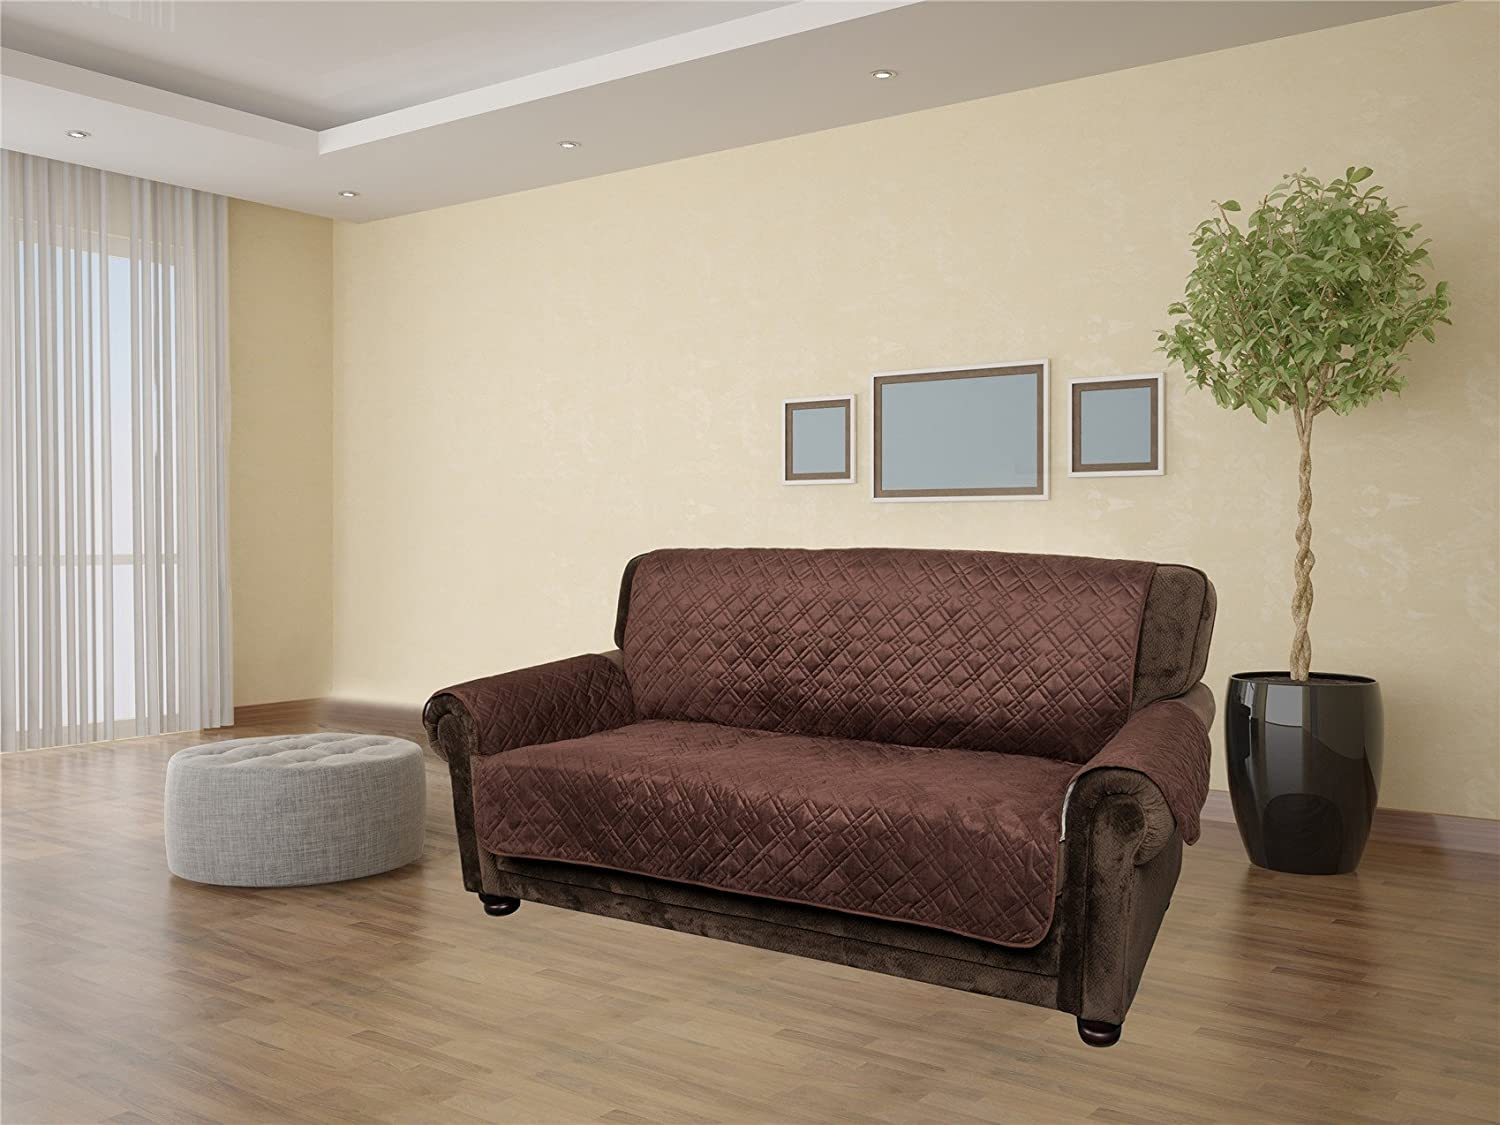 Quilted And Reversible Sofa Cover , Water Resistant & Stain Proof Couch  Cover , 2 Color